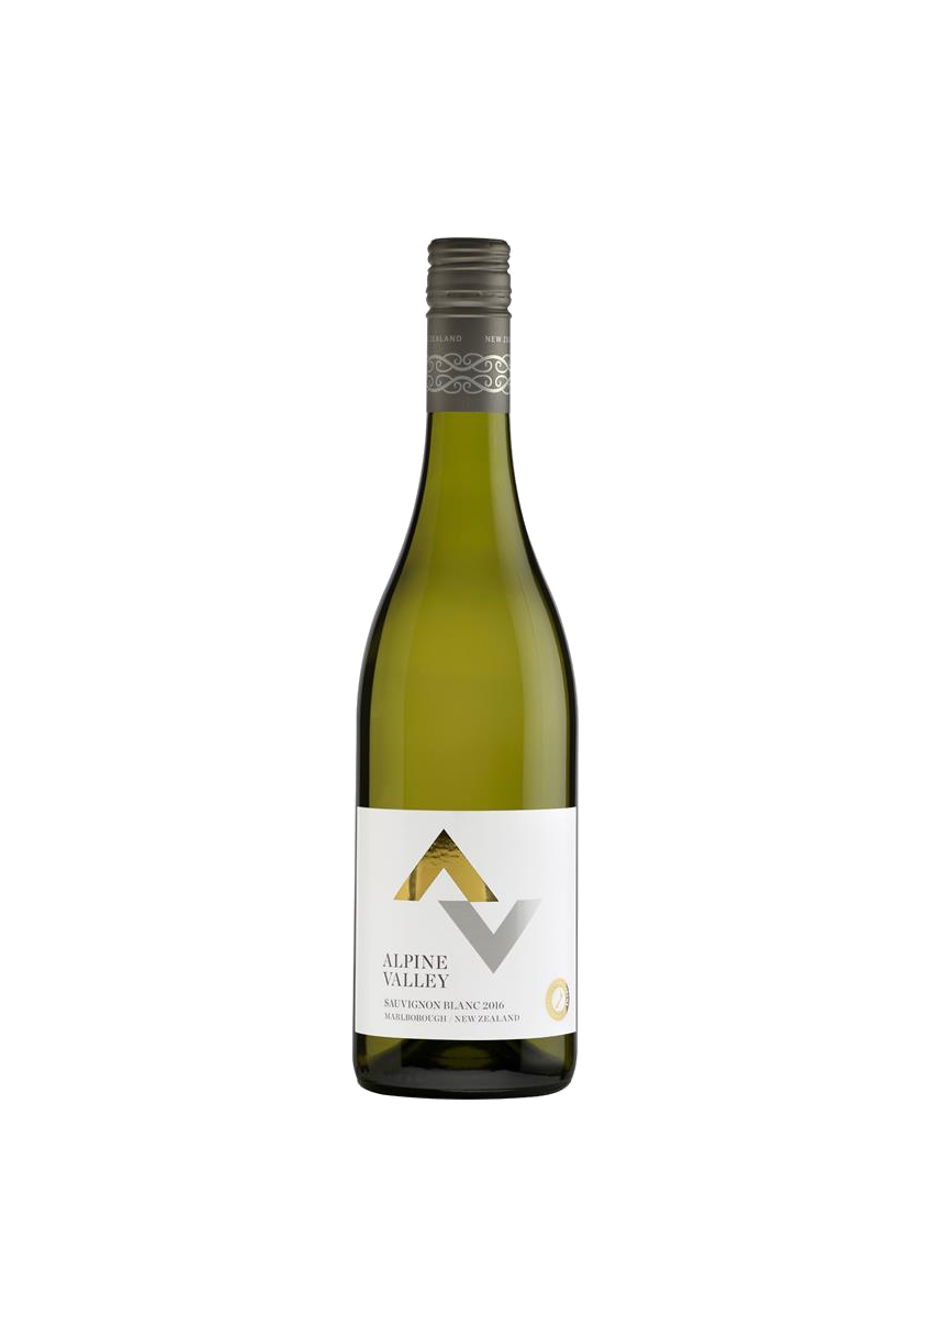 Alpine Valley Marlborough Sauvignon Blanc 2016